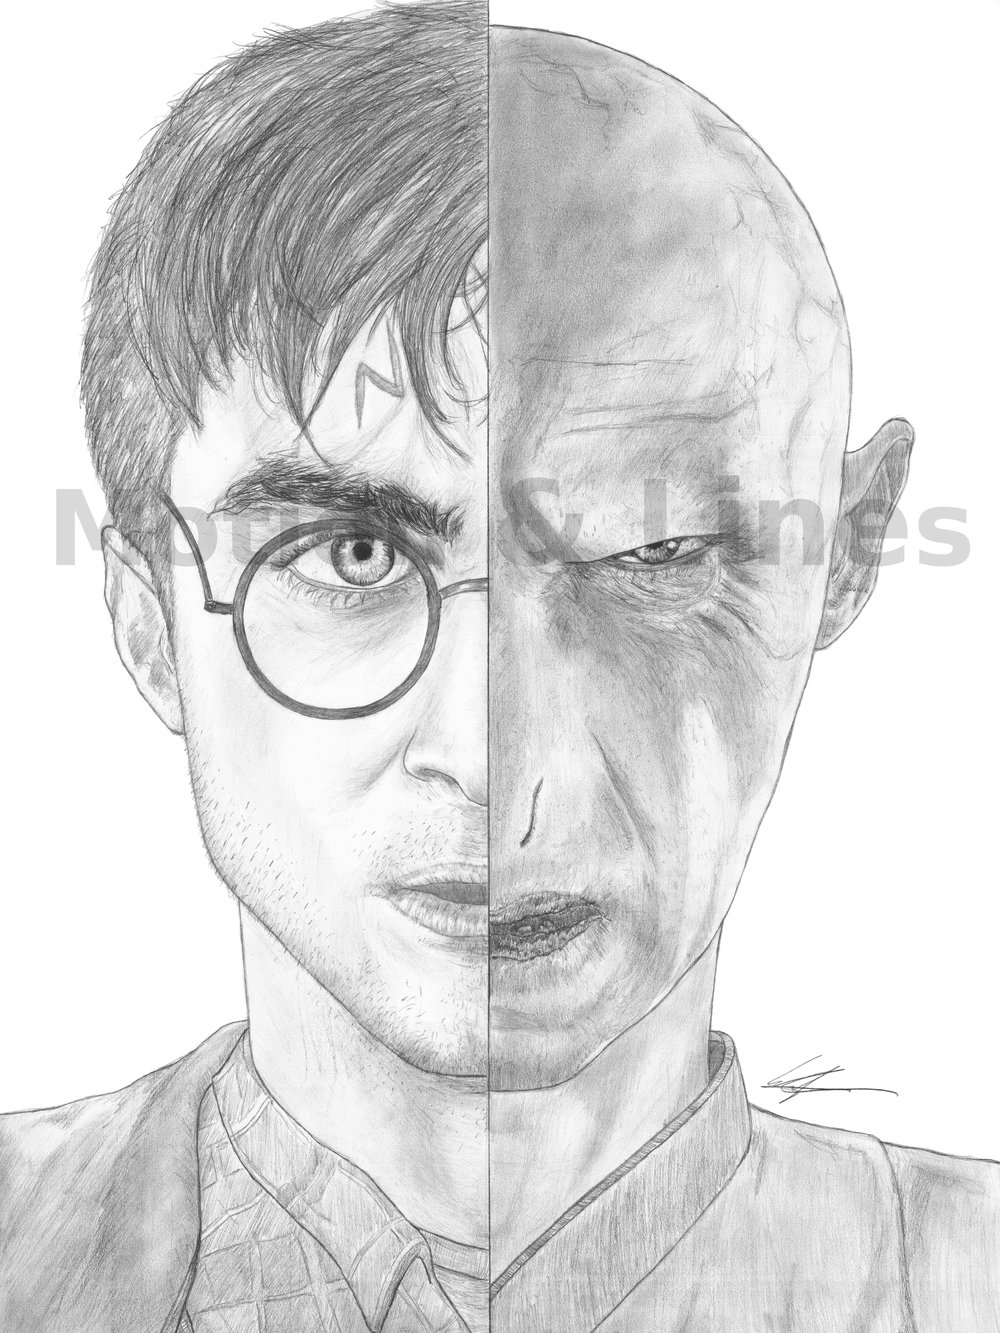 Harry Potter   18x24, drawn on Bristol paper with Tombow pencils. Prints available at the Store in both 18x24 and 11x17 sizes.